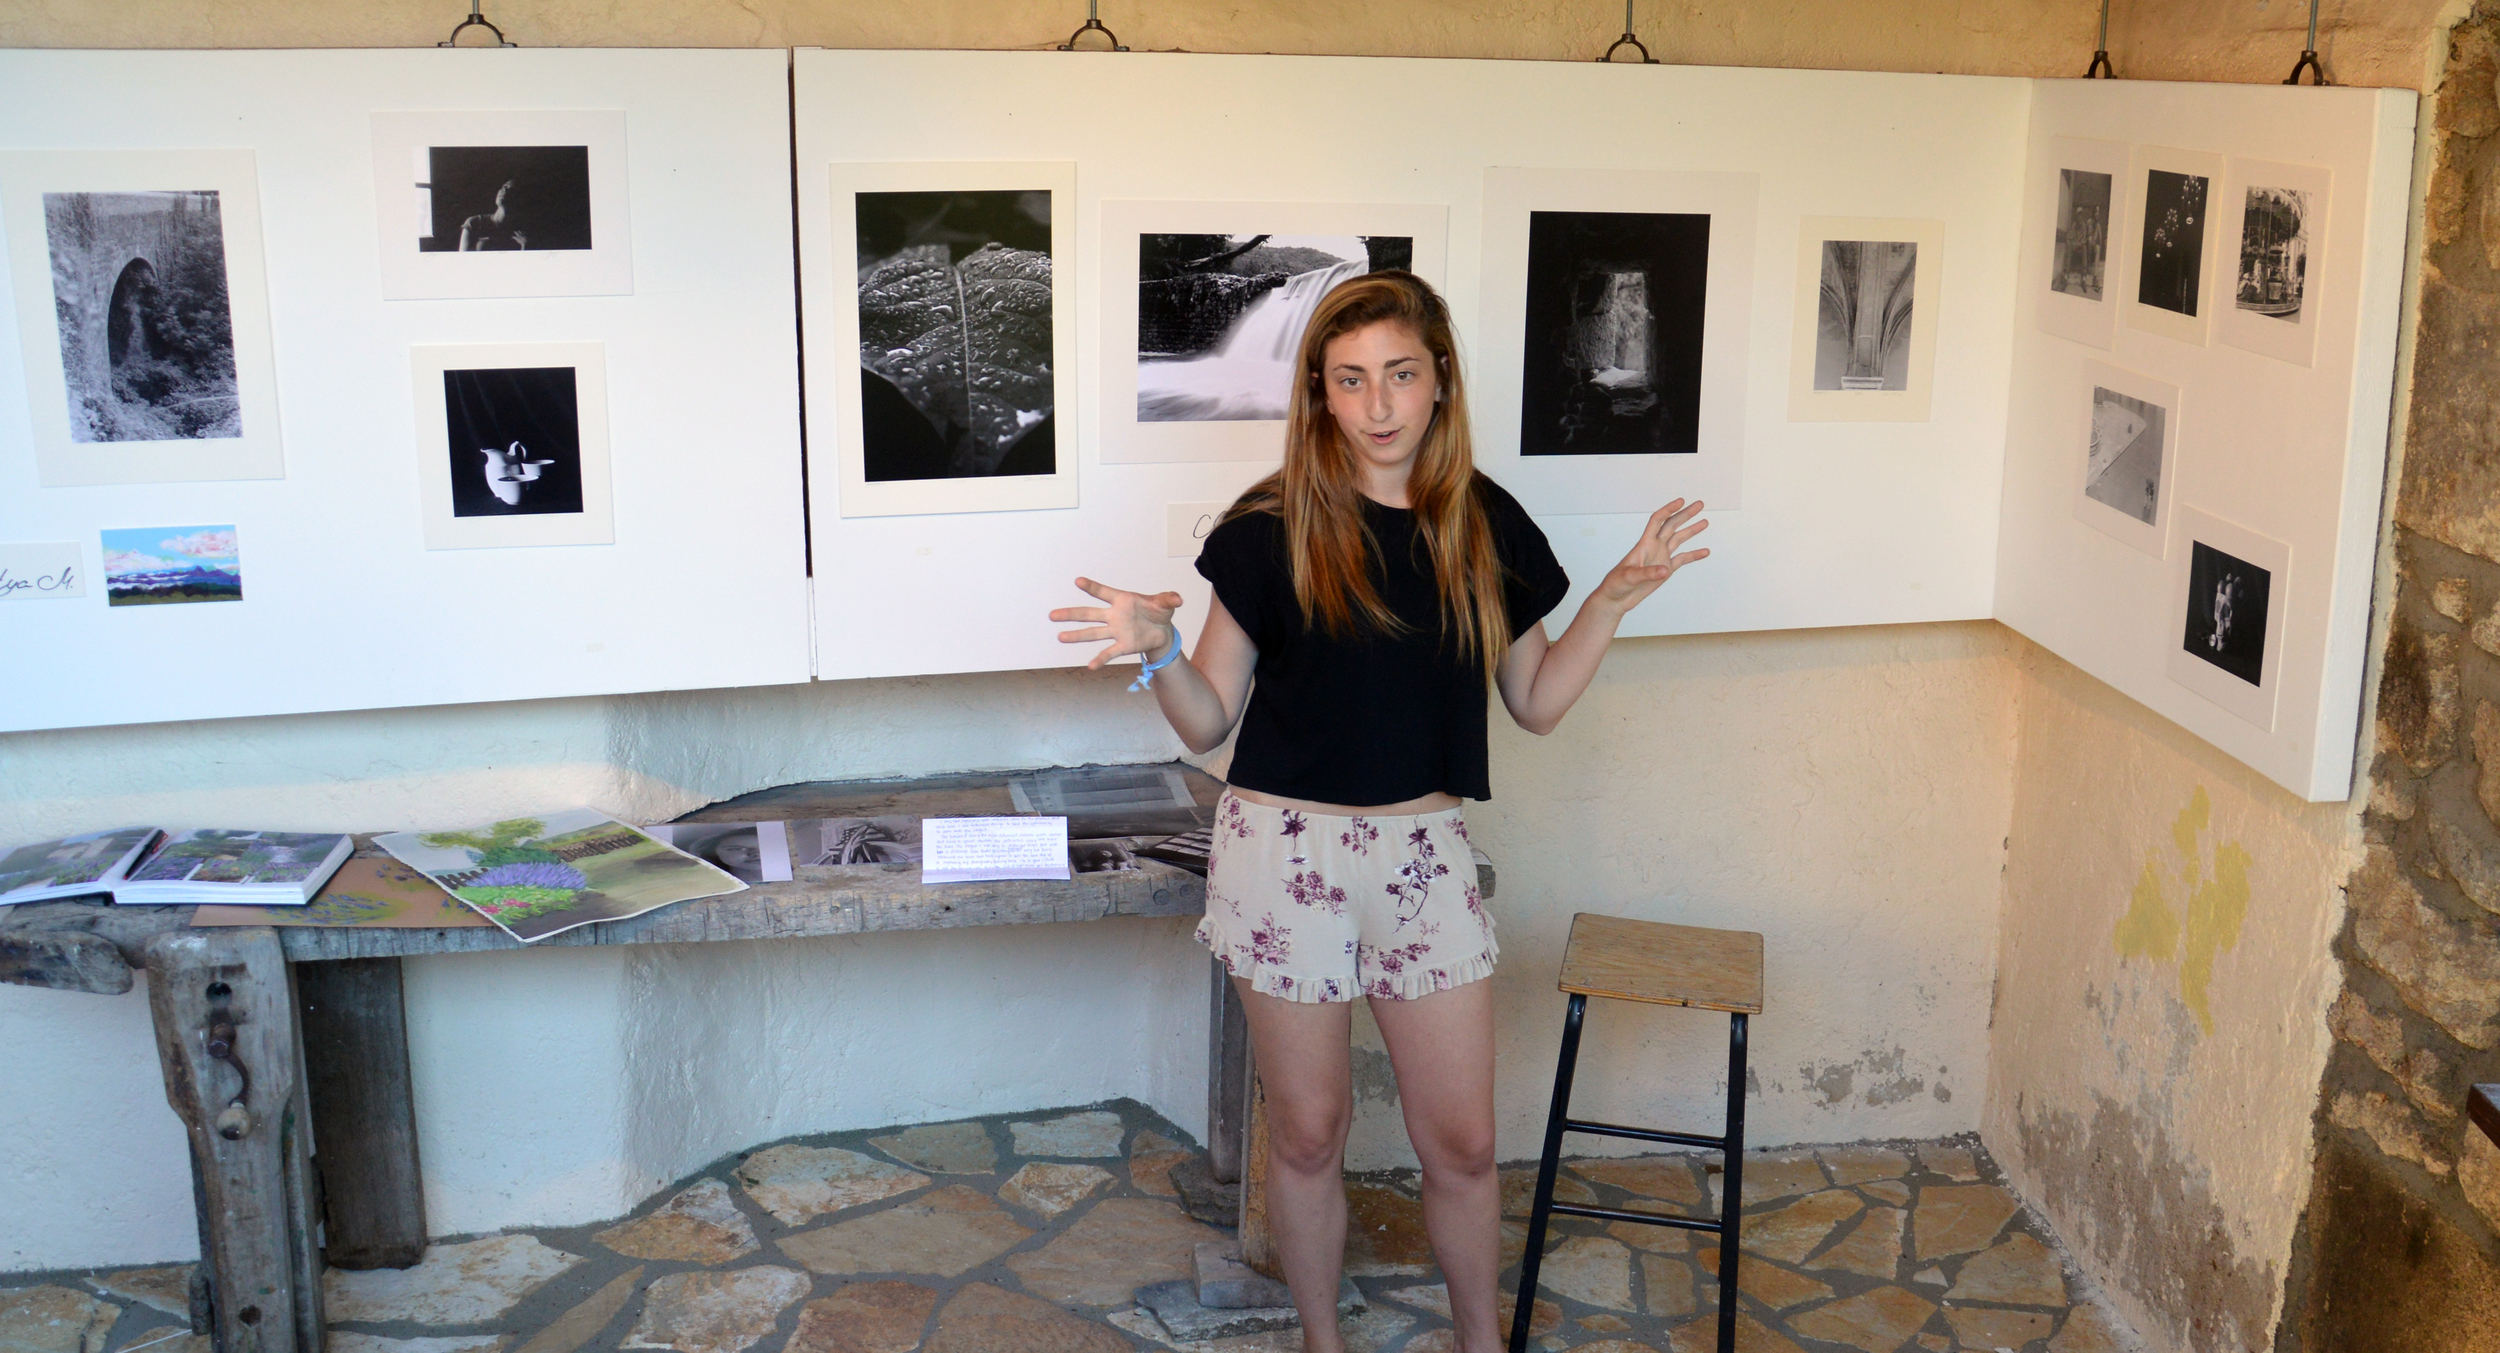 Students present their portfolio of work at the conclusion of the program